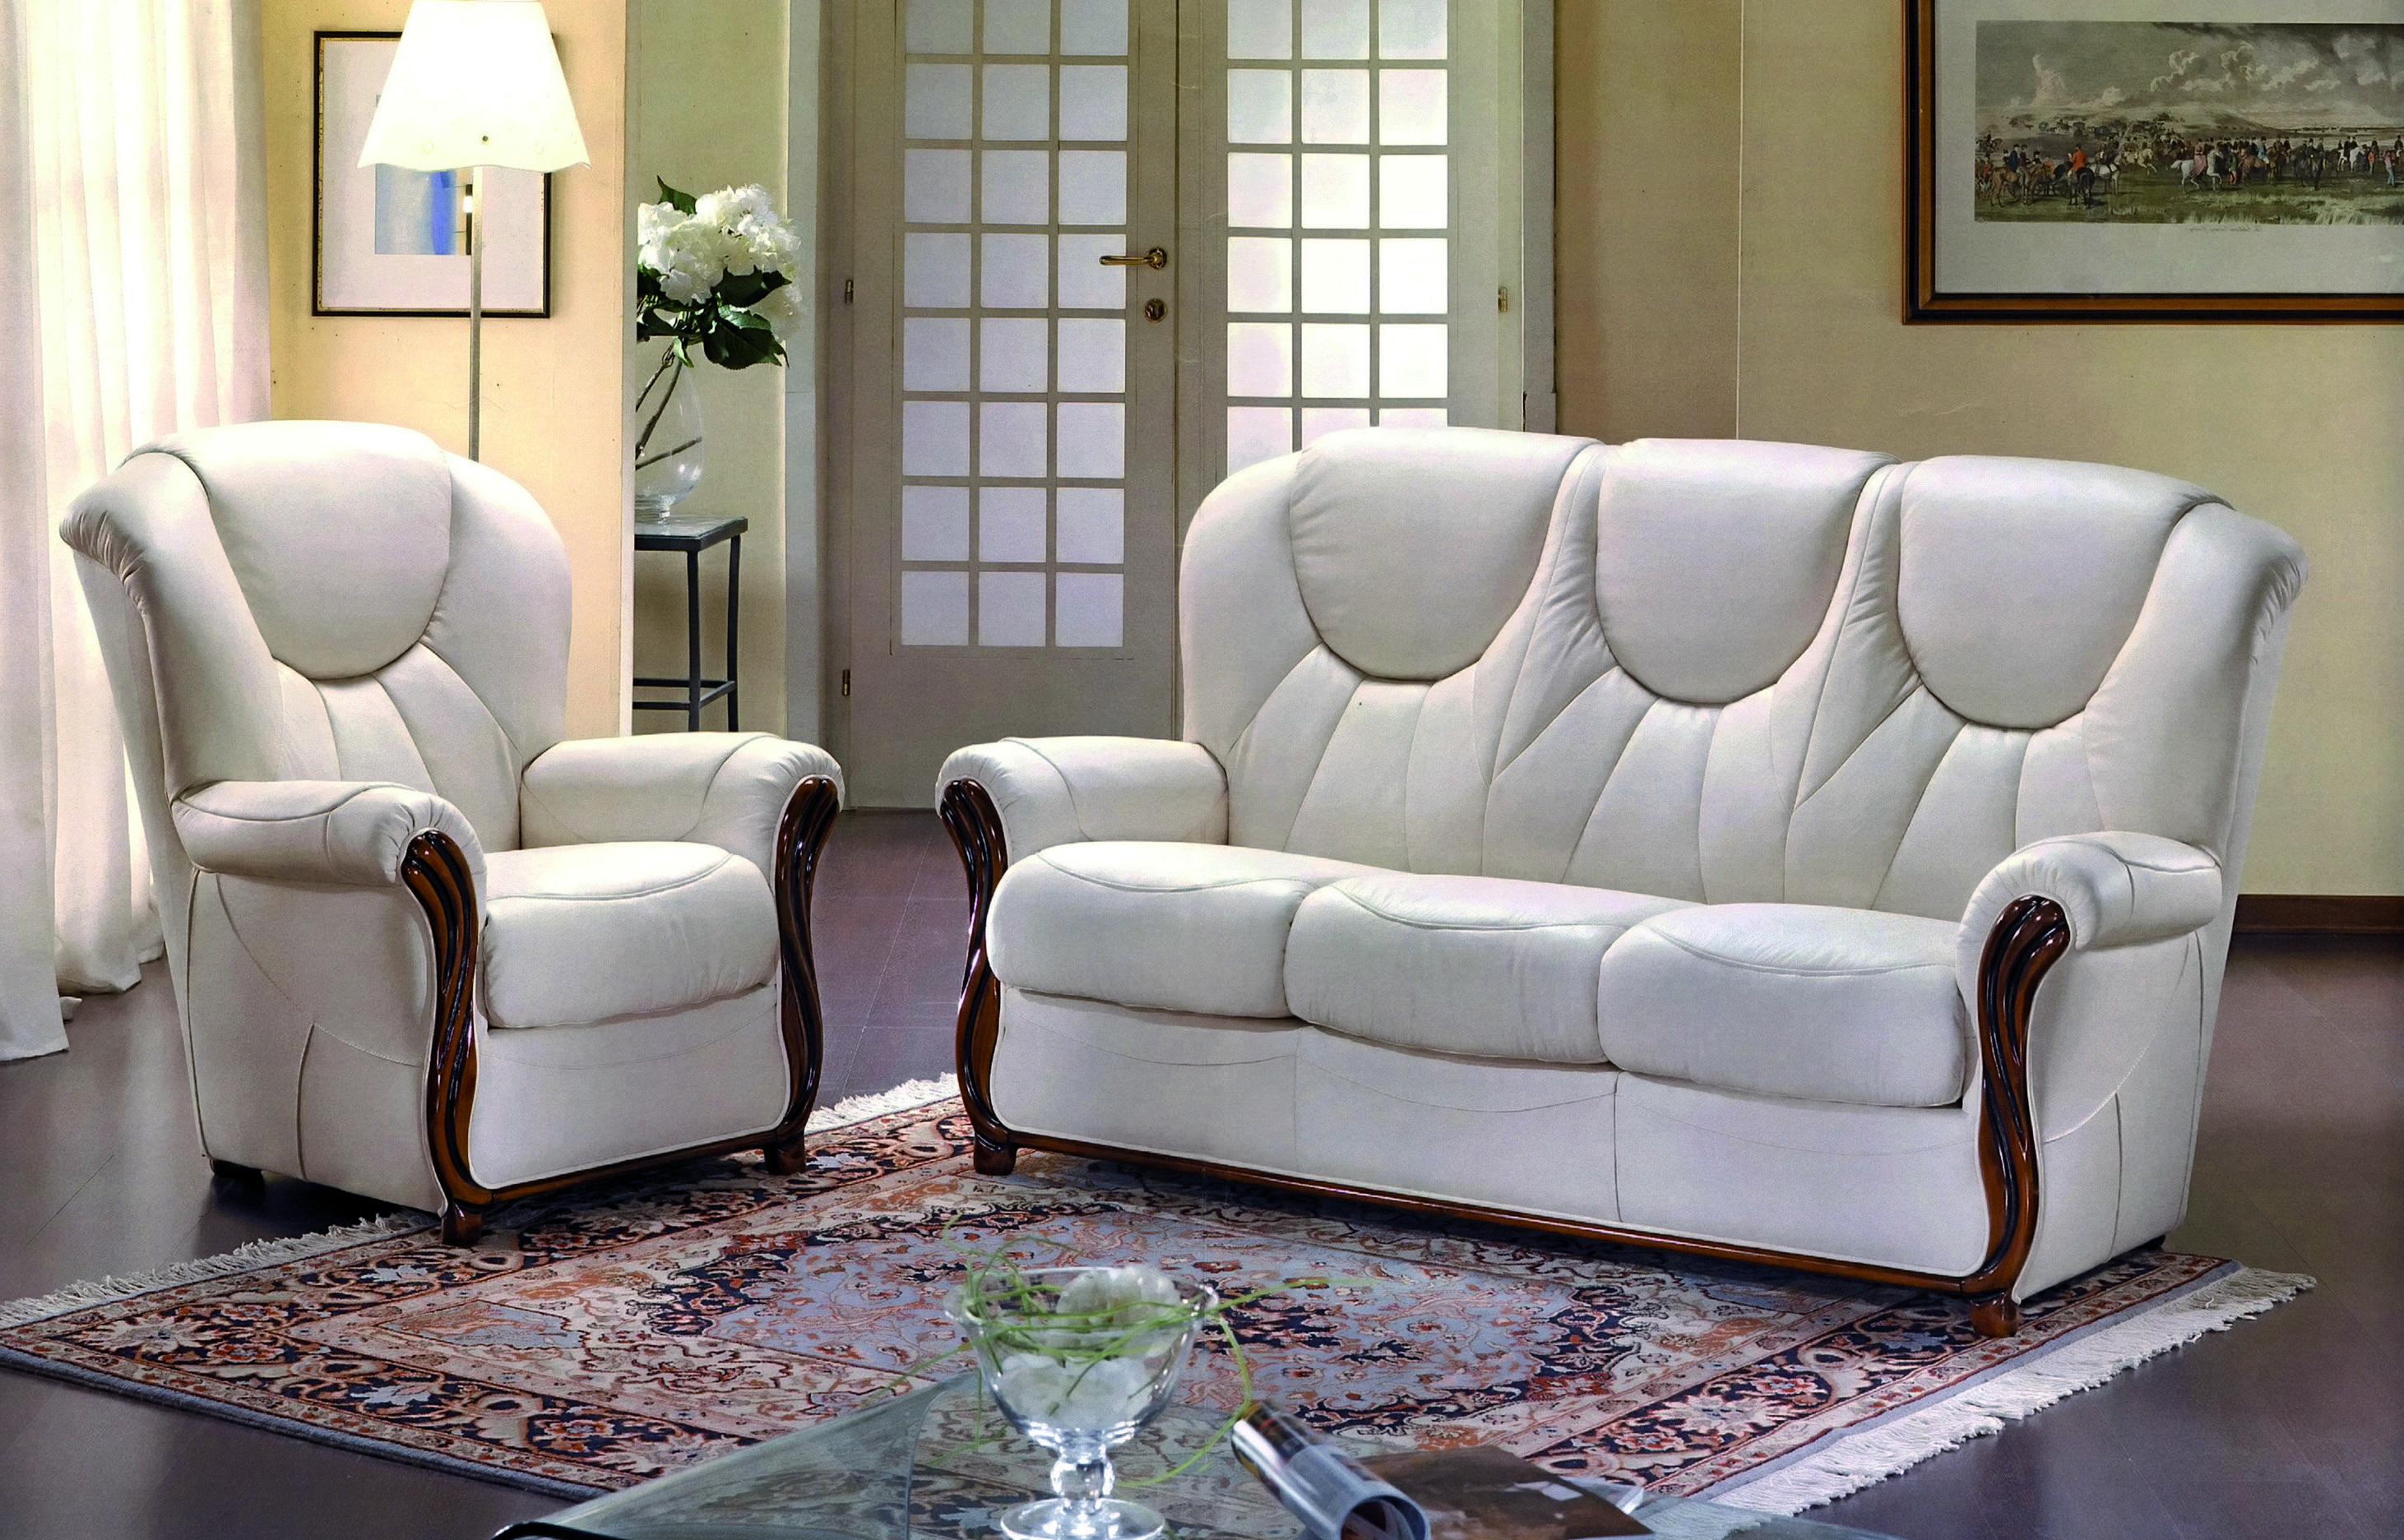 Pinmini Divani On Our Collection Of Leather/fabric Suites With Regard To Newest Gina Grey Leather Sofa Chairs (Gallery 15 of 20)